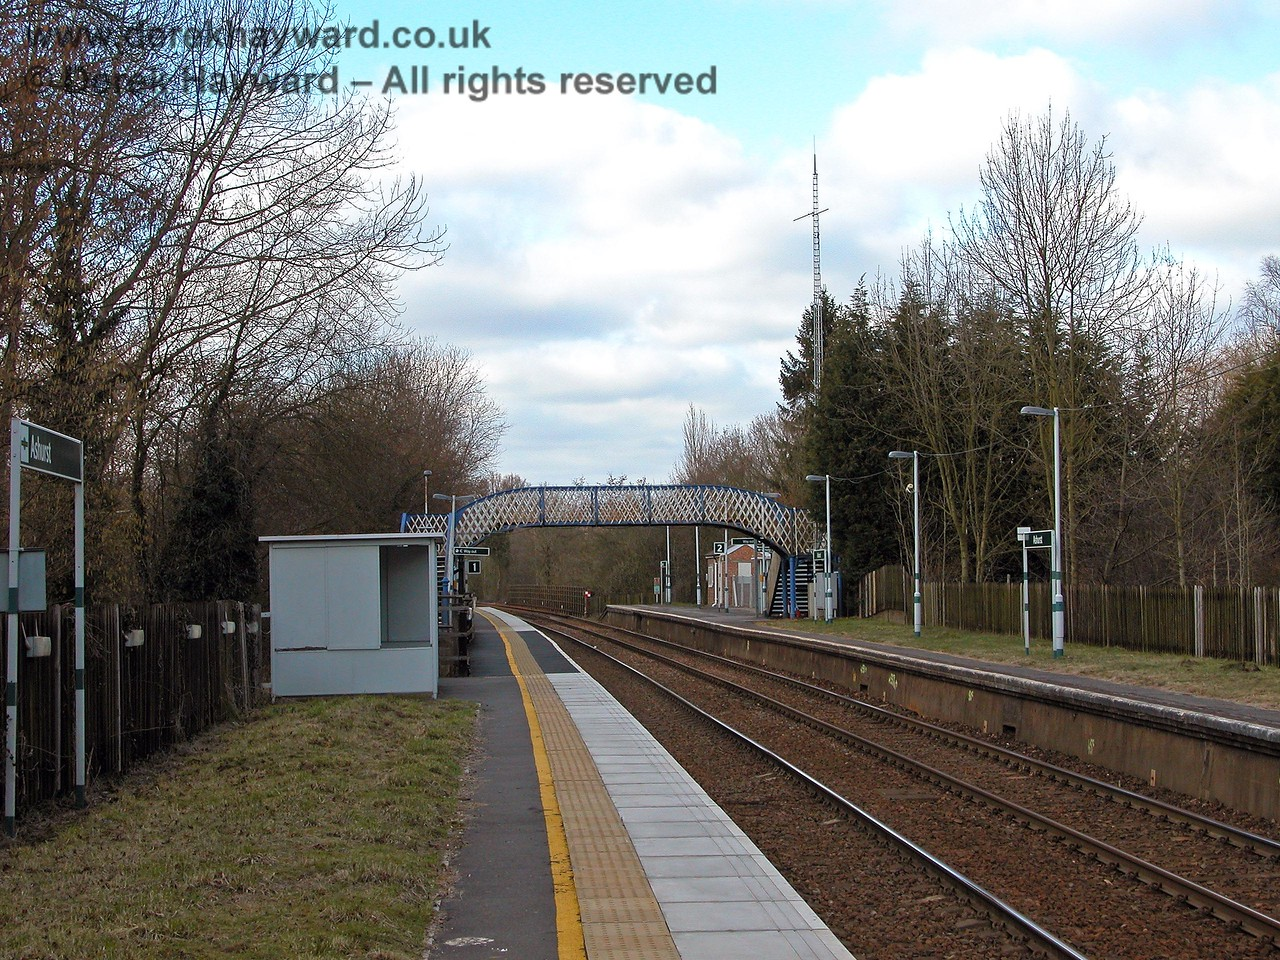 Another view north from the northbound platform, with the Cab Secure Radio mast clearly shown. They have cut the grass and refurbished the platform surface. 19.03.2006